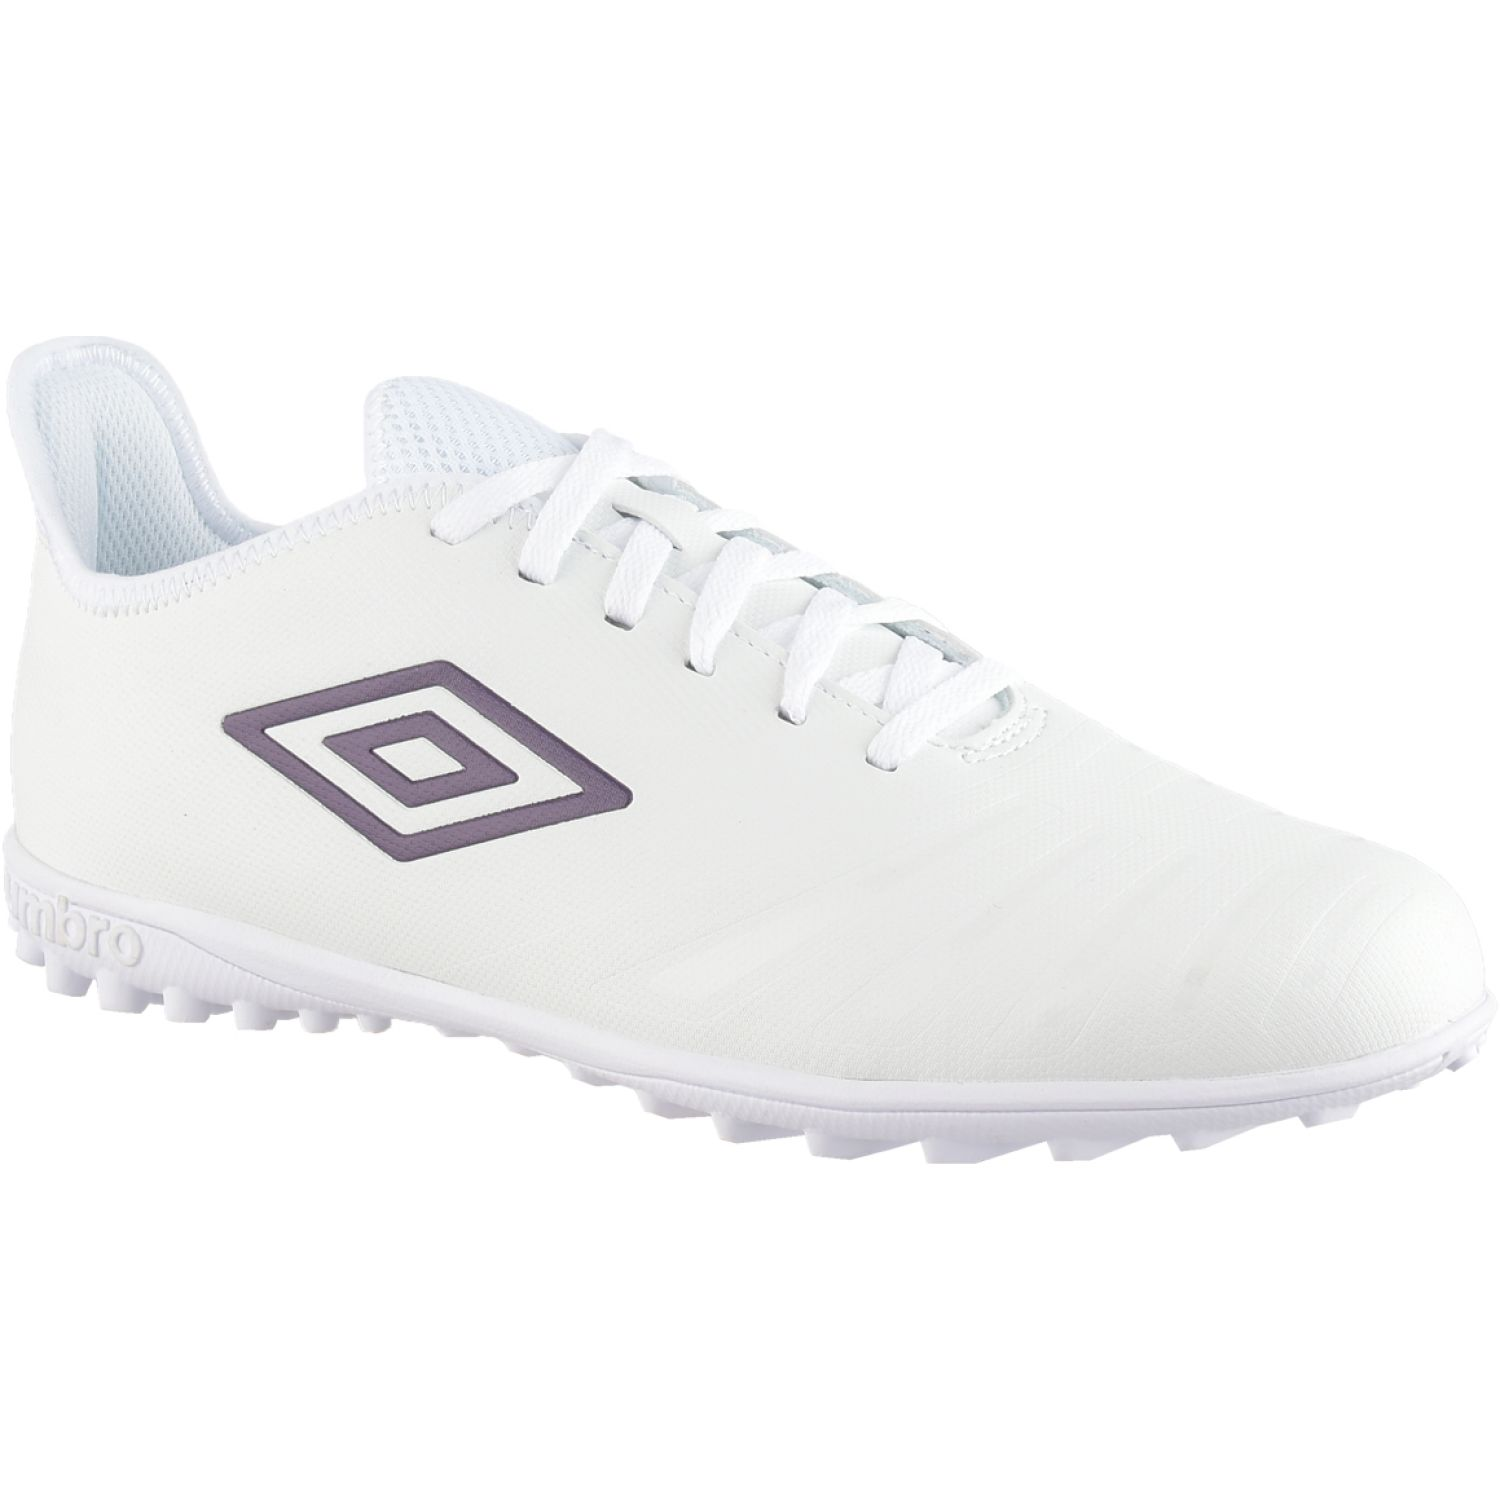 Umbro ux accuro iii club tf BLANCO / GUINDA Hombres